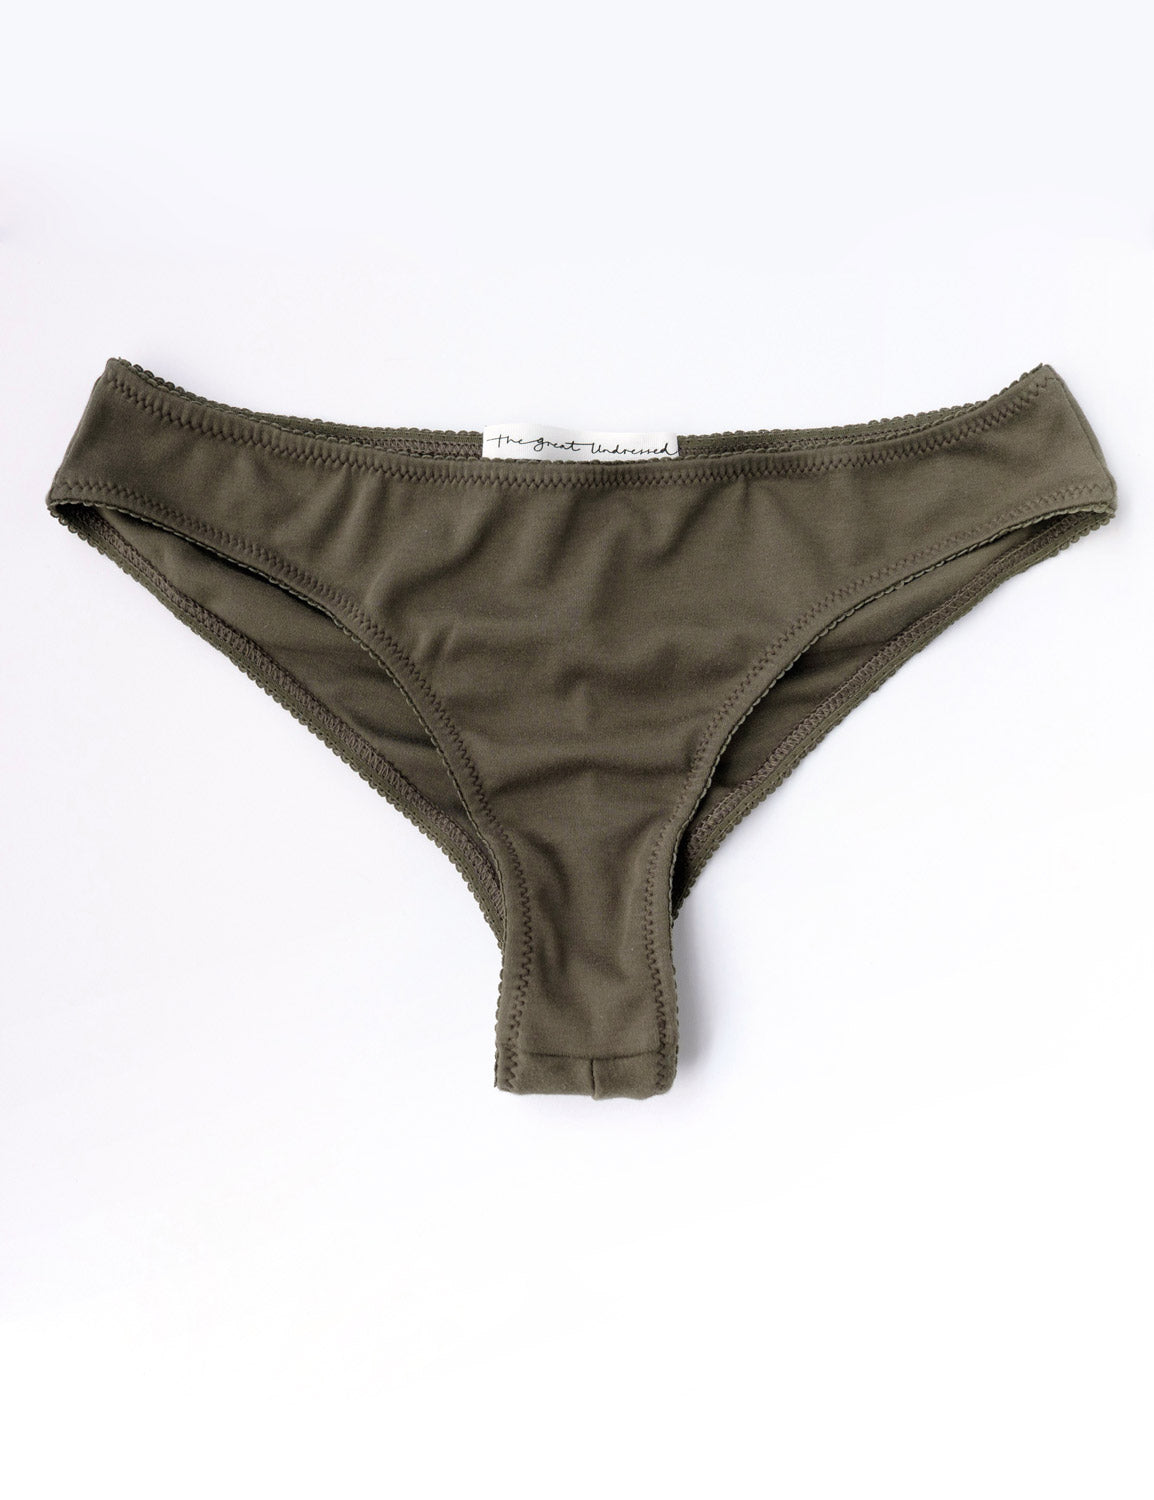 Cheeky Undies - Olive